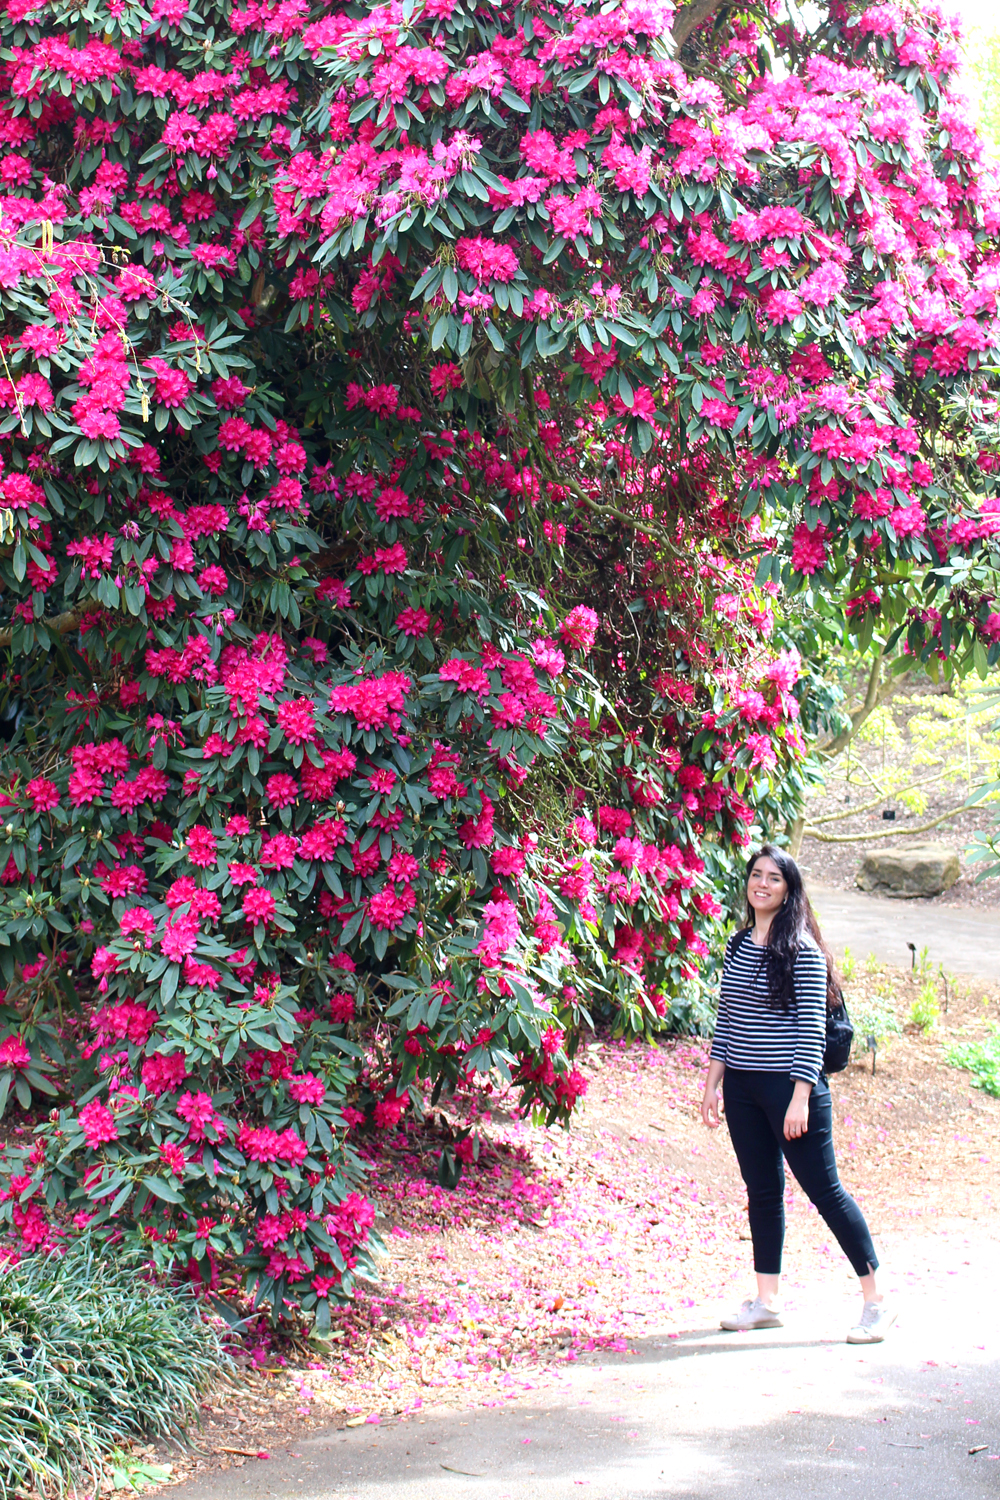 Huge Rhododendron at Kew Gardens in Spring - London lifestyle blog